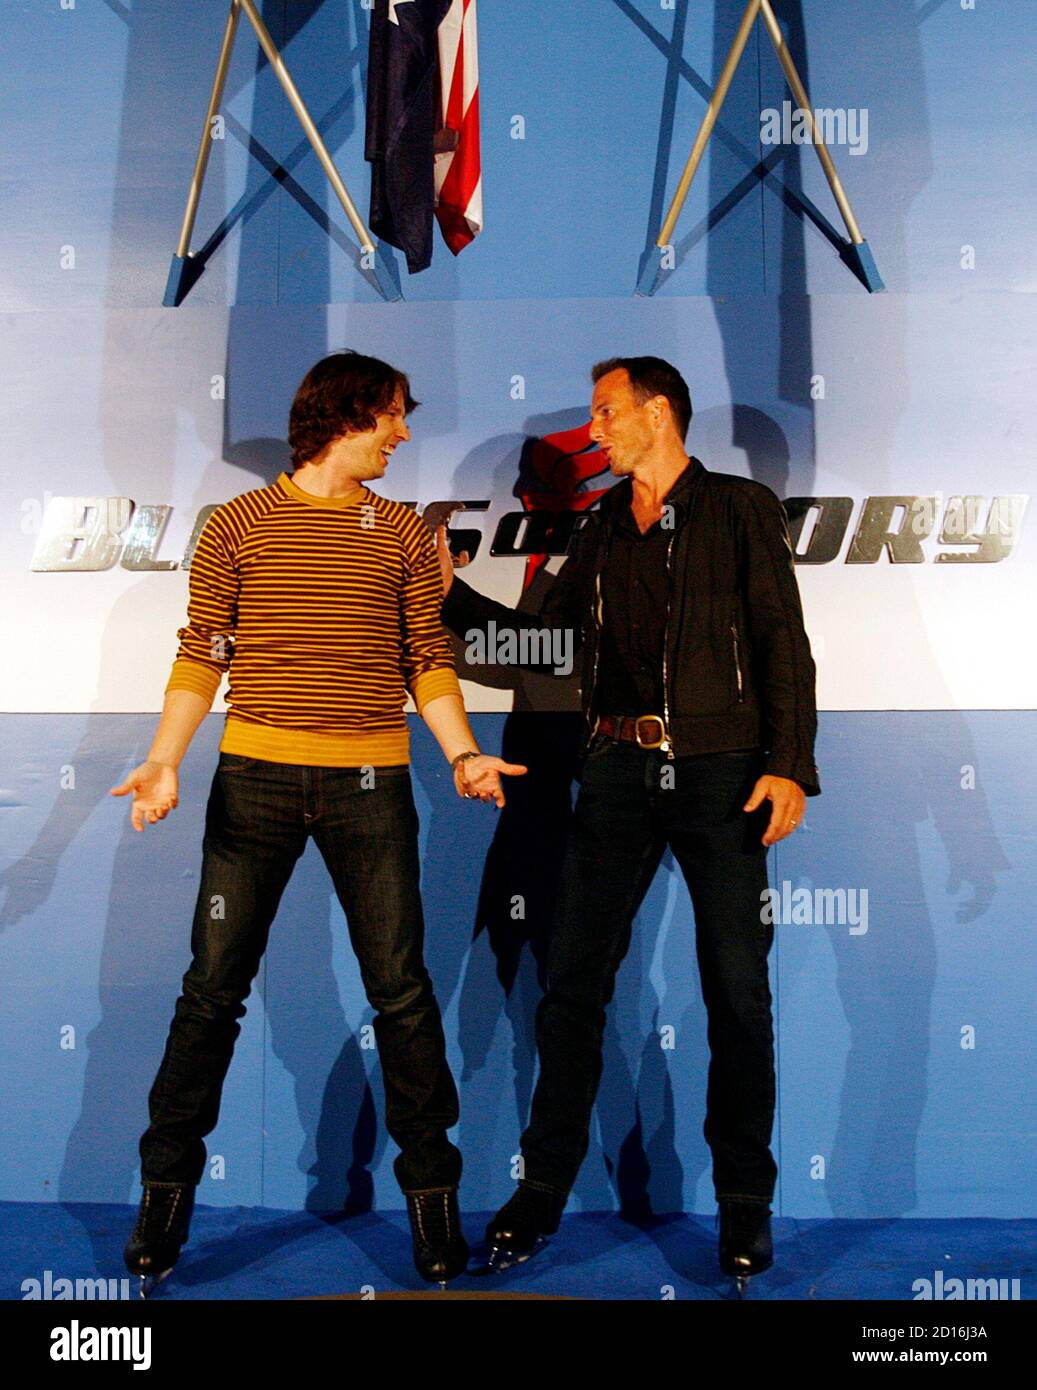 """Actors Jon Heder (L) and Will Arnett joke around at a media opportunity at an ice skating rink to promote their film """"Blades of Glory"""" in Sydney June 6, 2007.         REUTERS/Tim Wimborne     (AUSTRALIA) Foto Stock"""